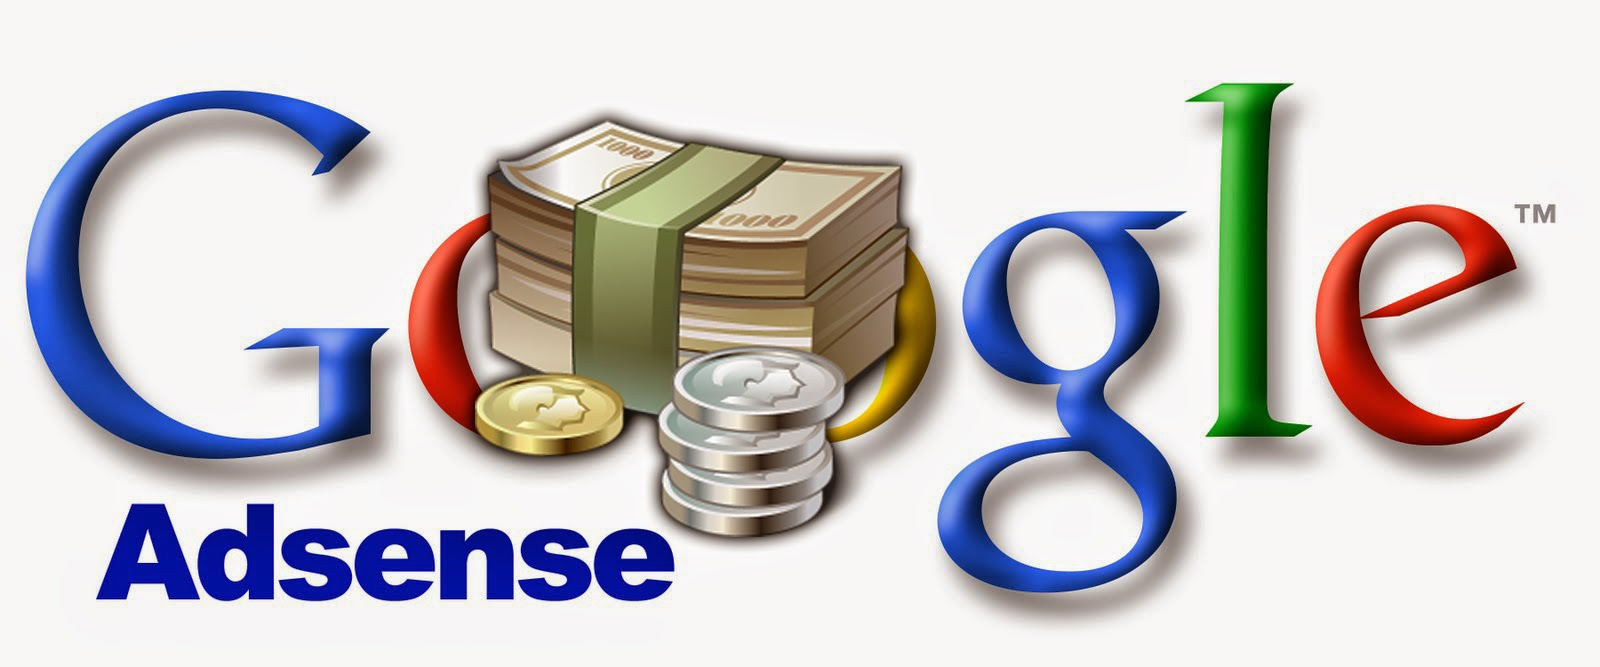 Best Way Of Getting Adsense Fully Approved Even If Your Previous Adsense Was Disabled For Invalid Activity